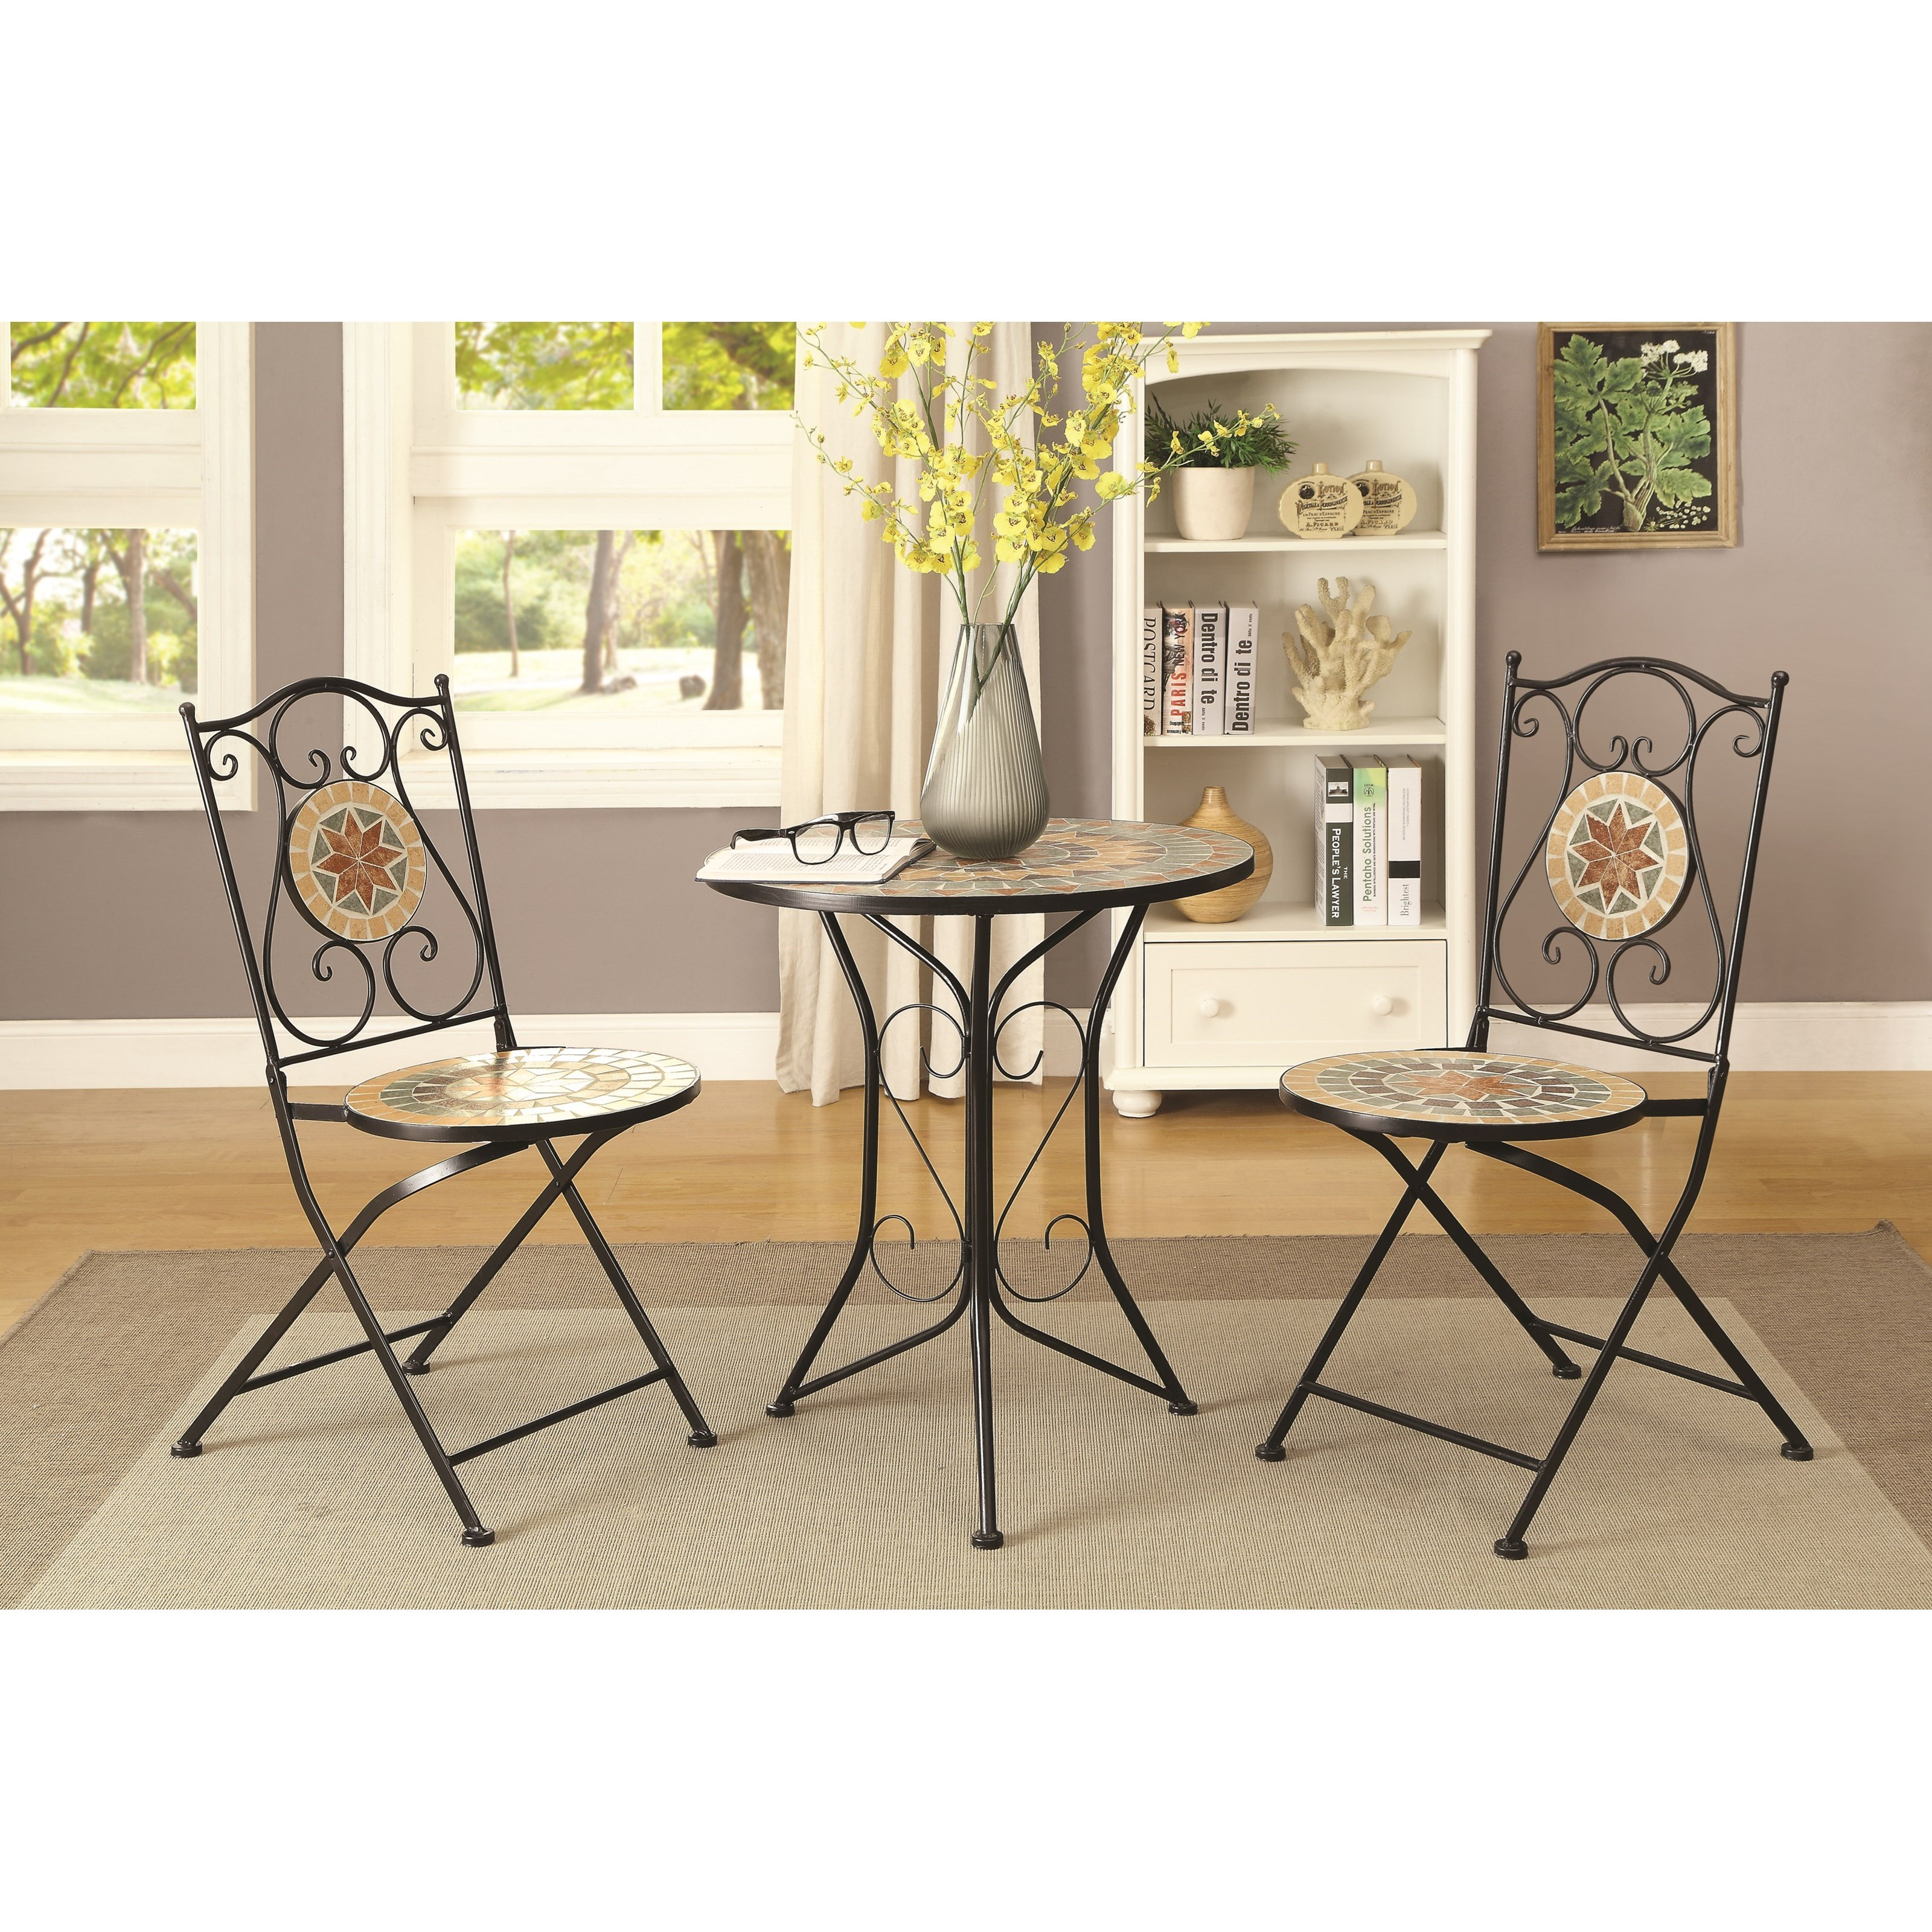 Coaster Dinettes 3 Piece Dining Set - Item Number: 104165